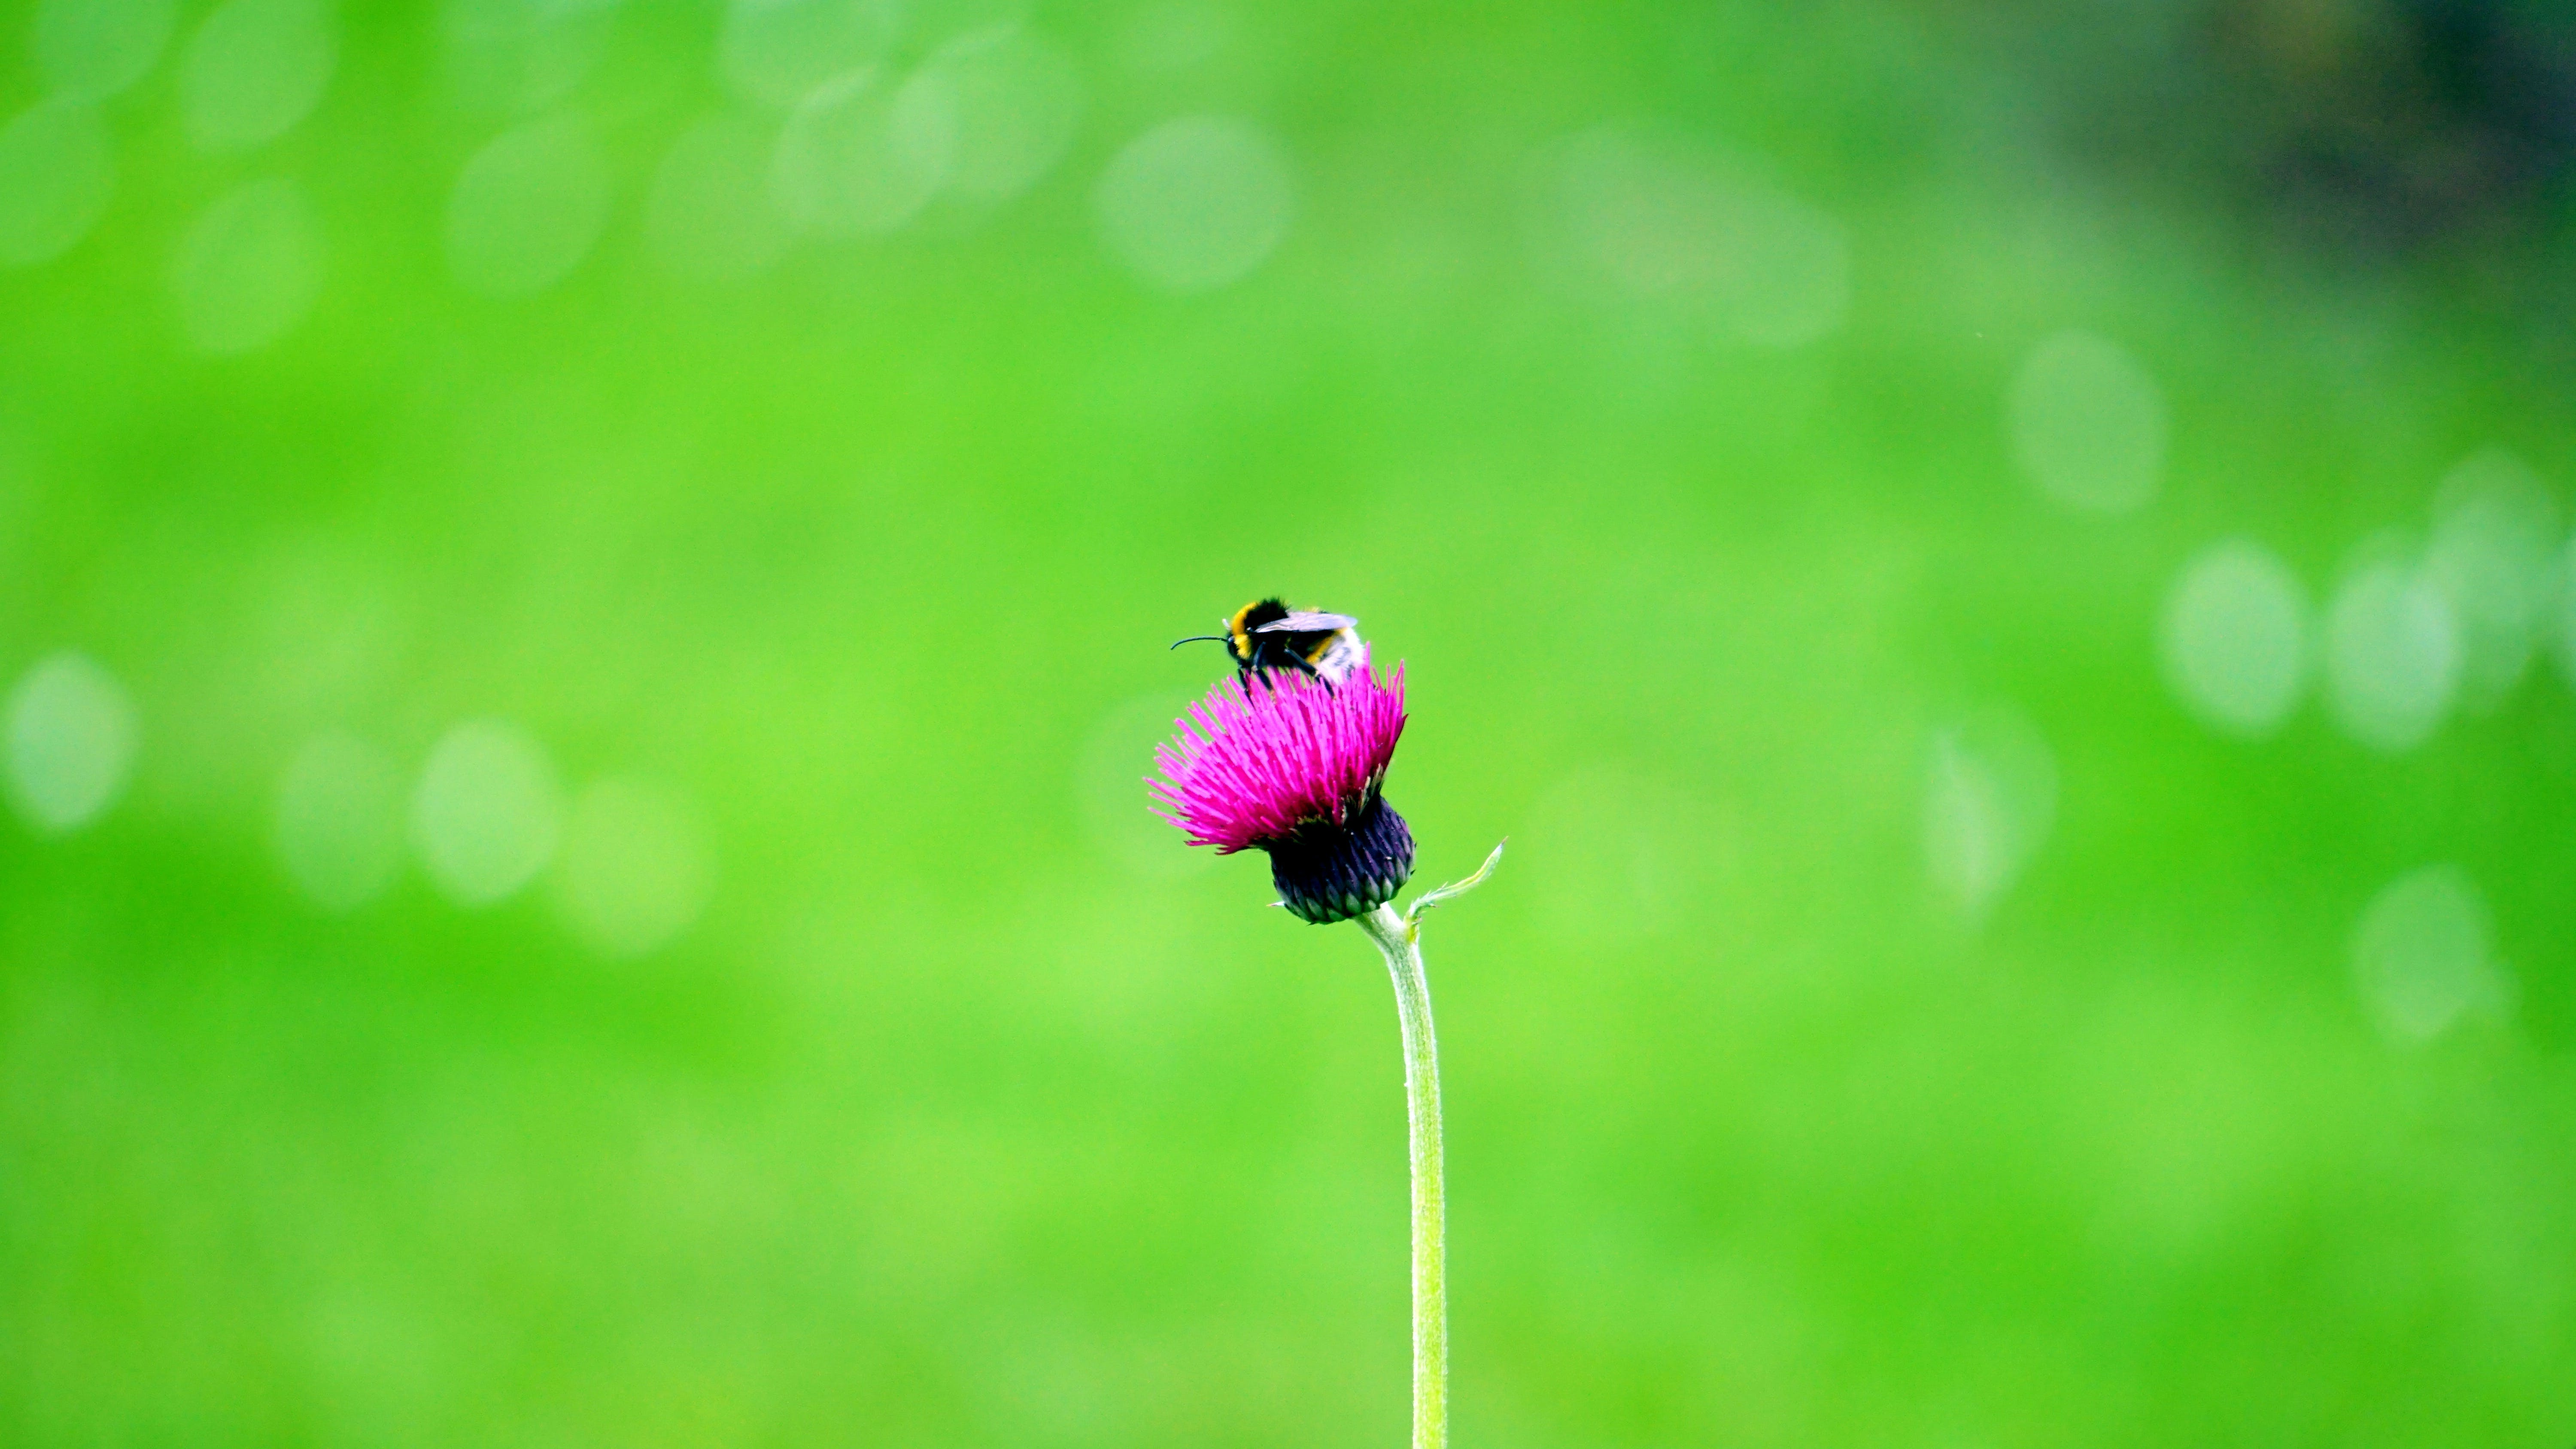 Black Insect on Pink Flower